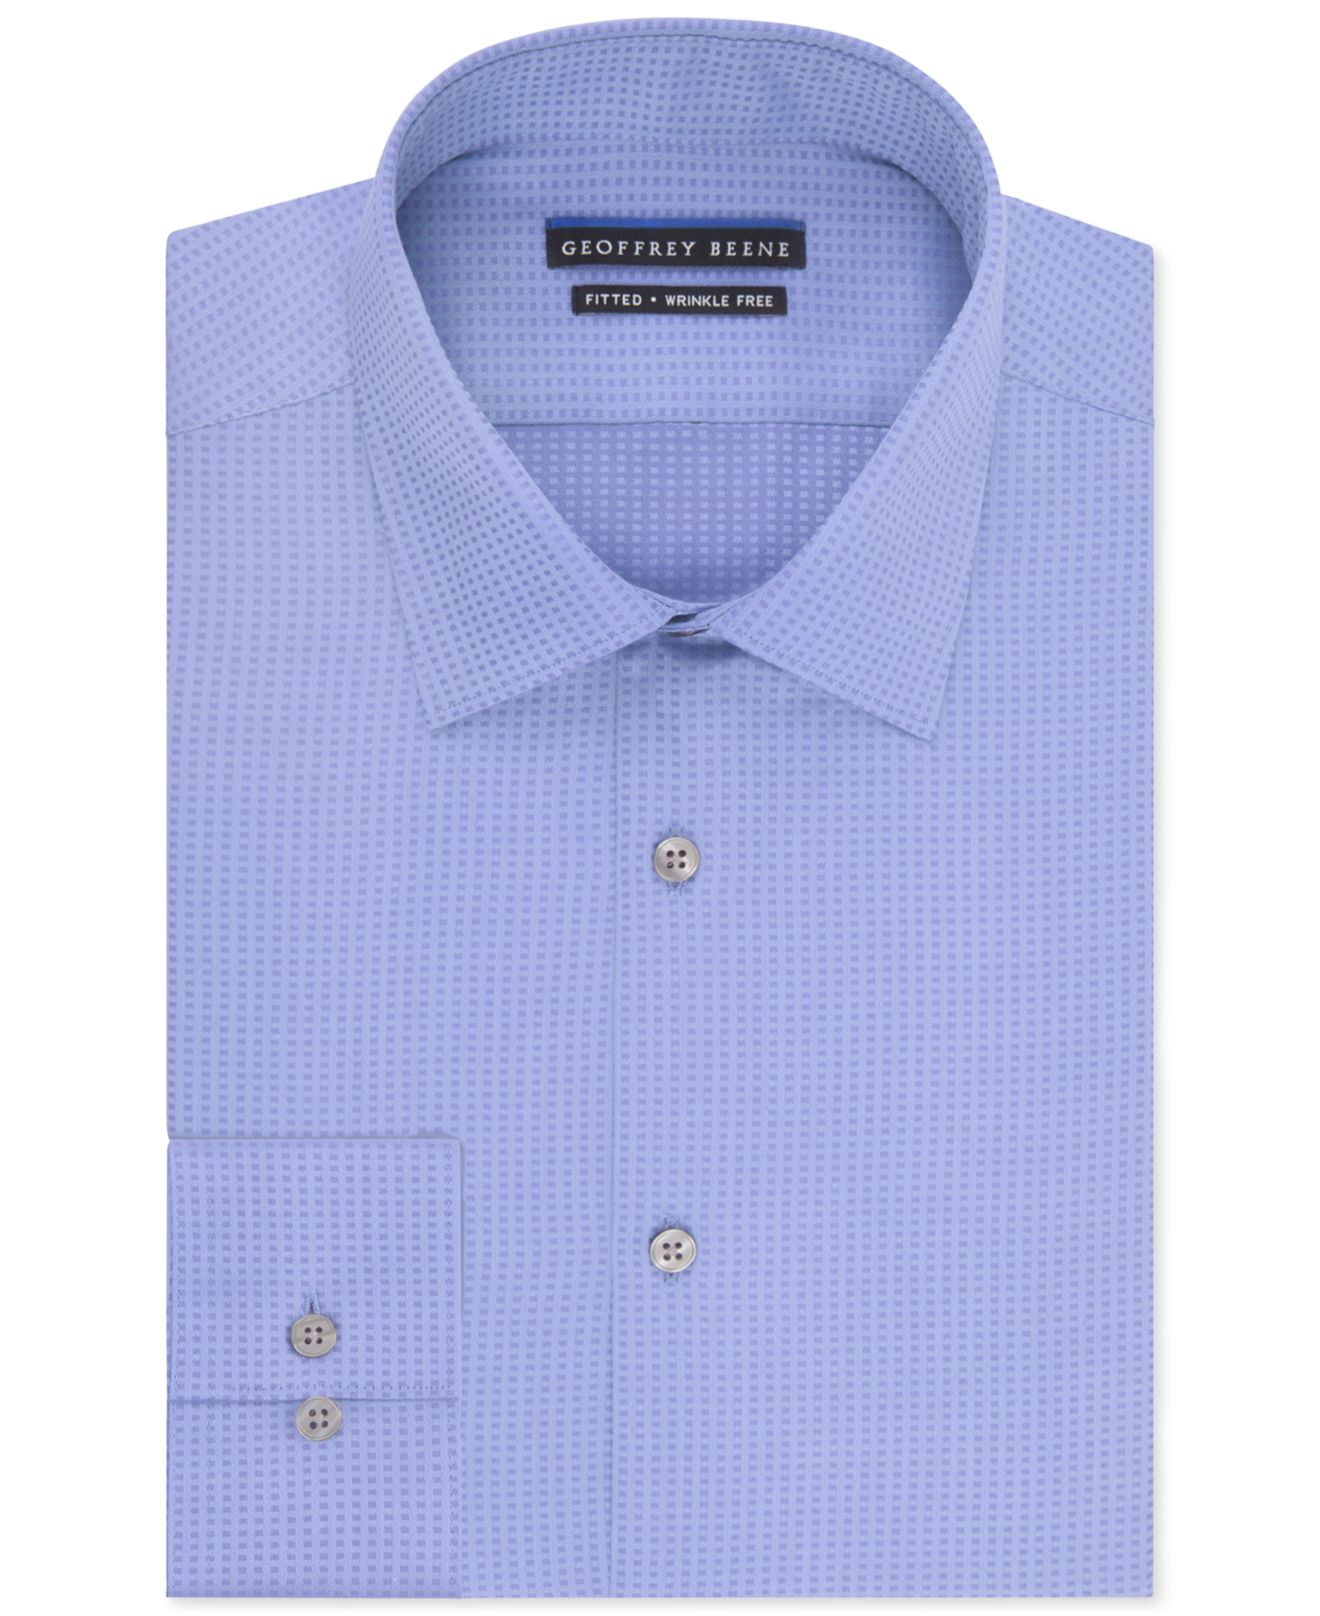 Lyst geoffrey beene men 39 s fitted wrinkle free textured for Non wrinkle dress shirts